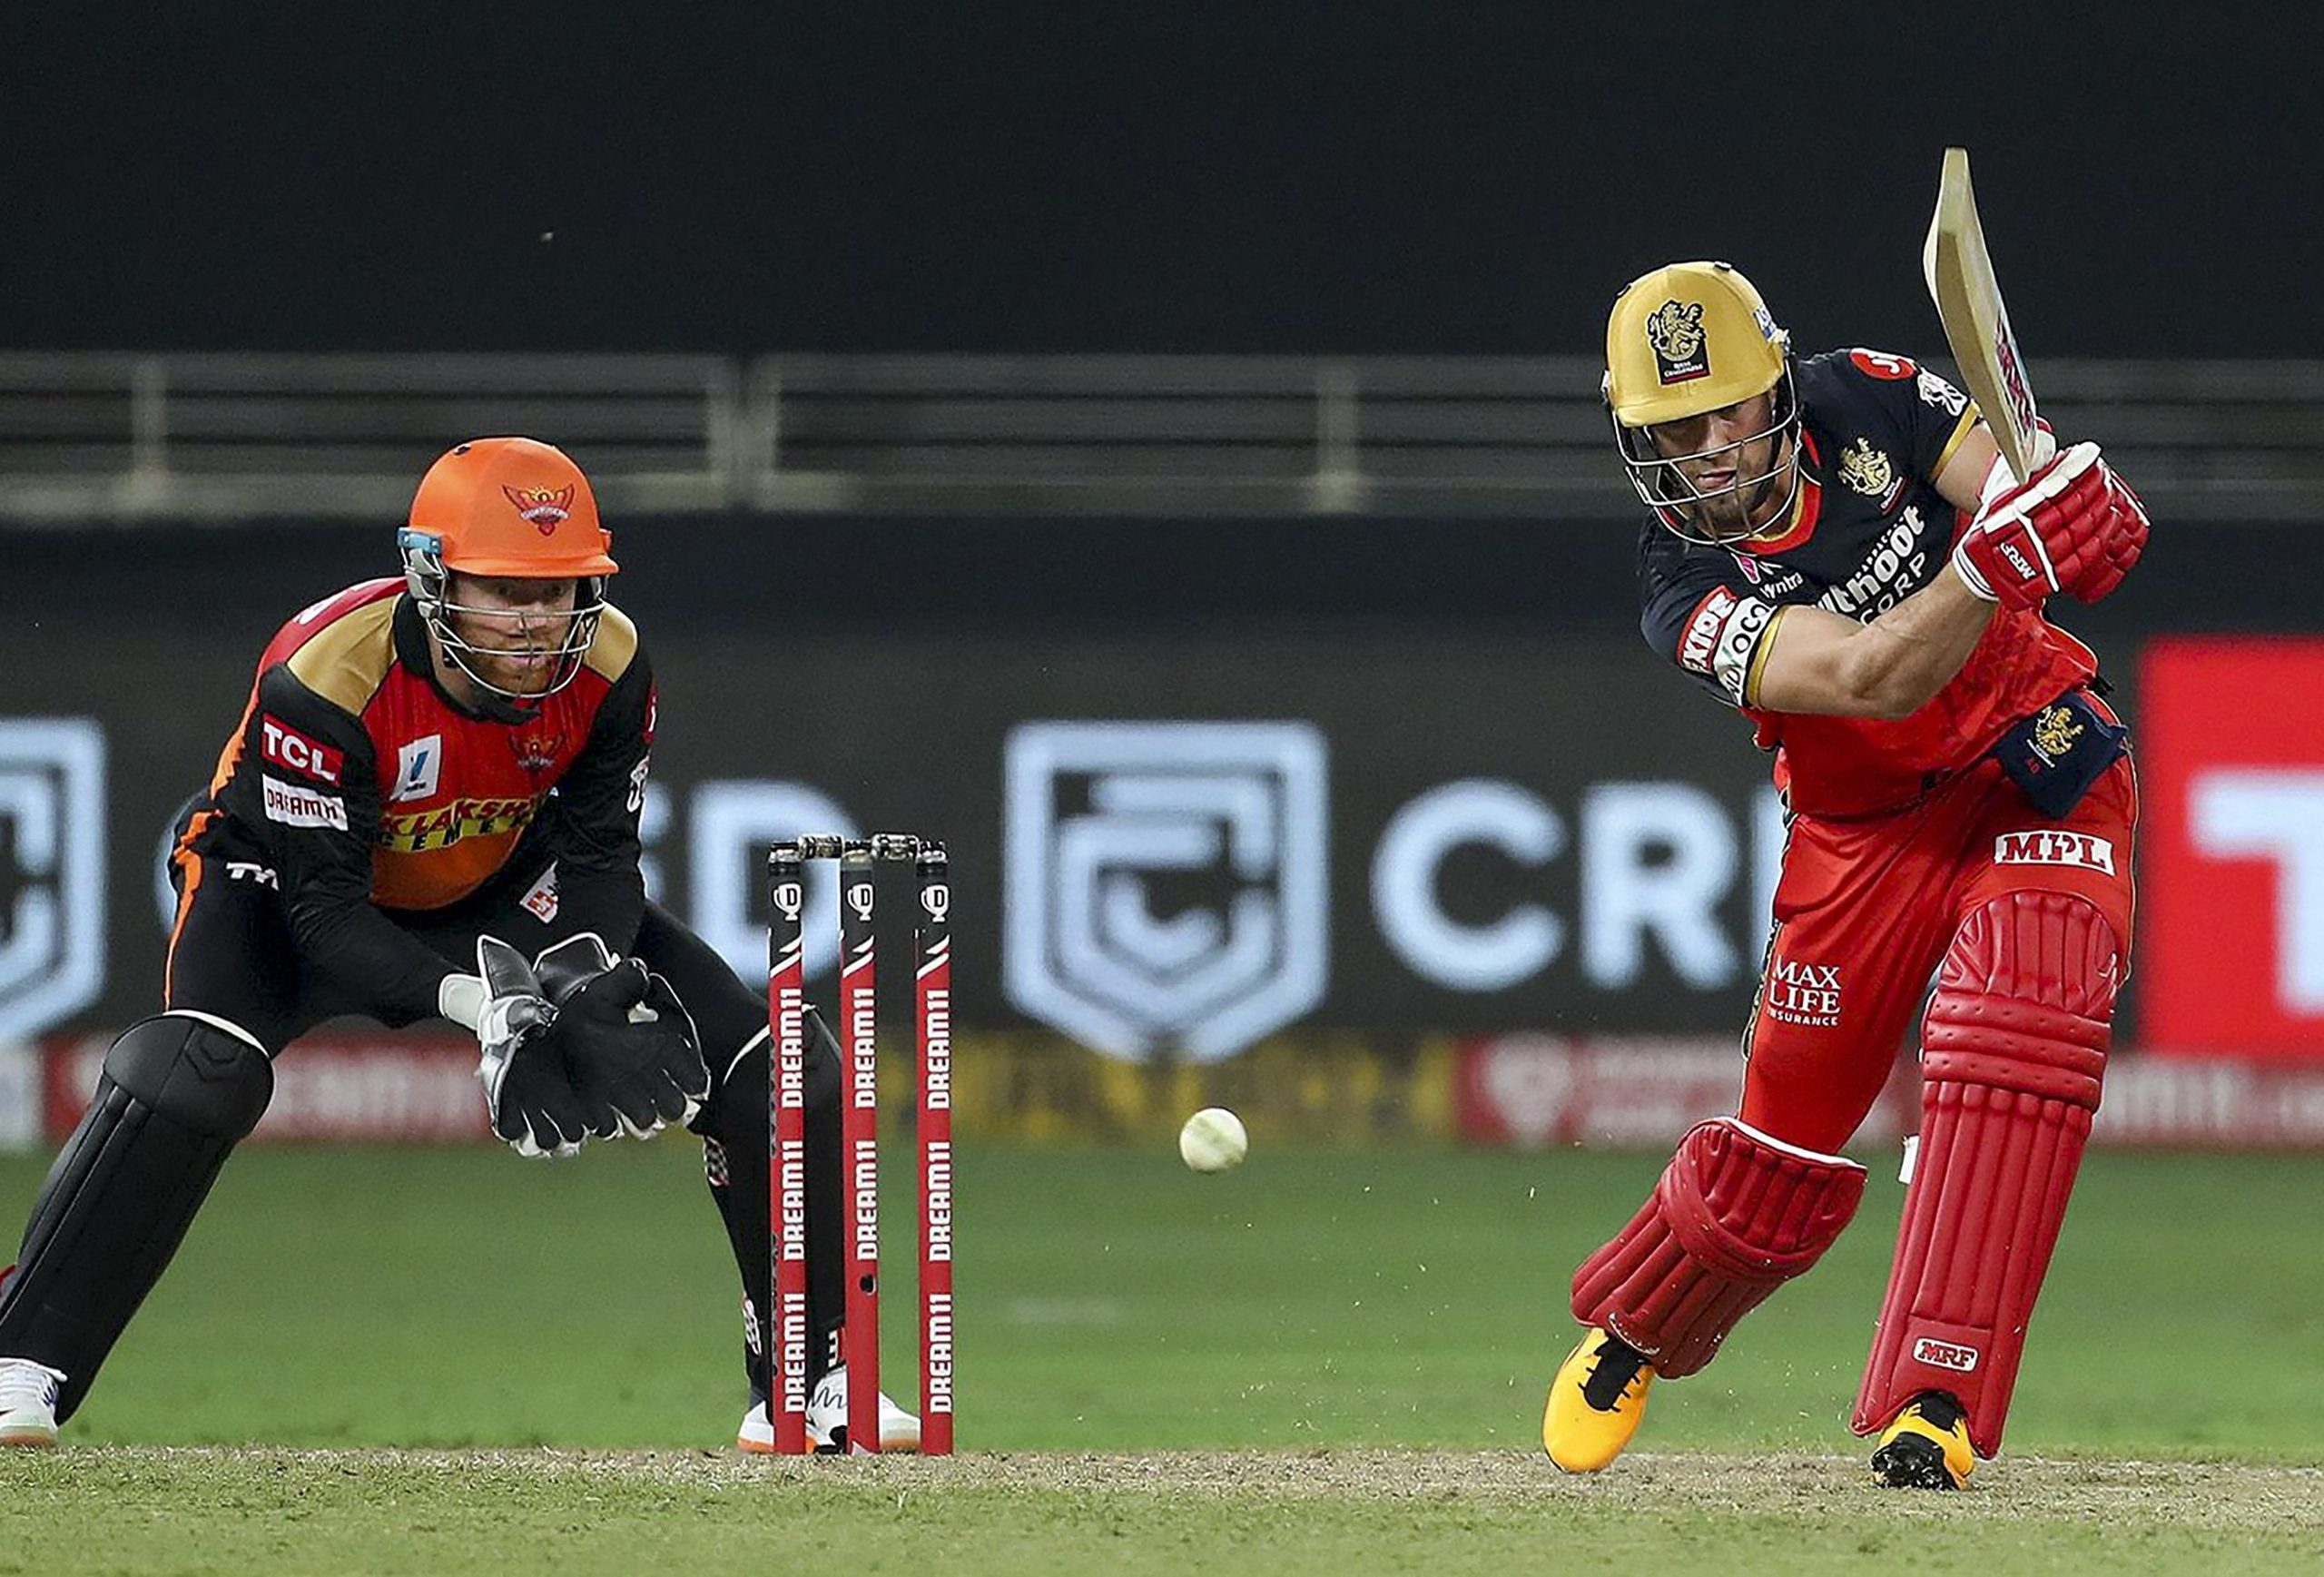 Dubai: Royal Challengers Bangalore batsman AB de Villiers  plays during a cricket match of IPL 2020 against Sunrisers Hyderabad, at Dubai International Cricket Stadium, Dubai, United Arab Emirates, Monday, Sept. 21, 2020. (PTI Photo/Sportzpics)